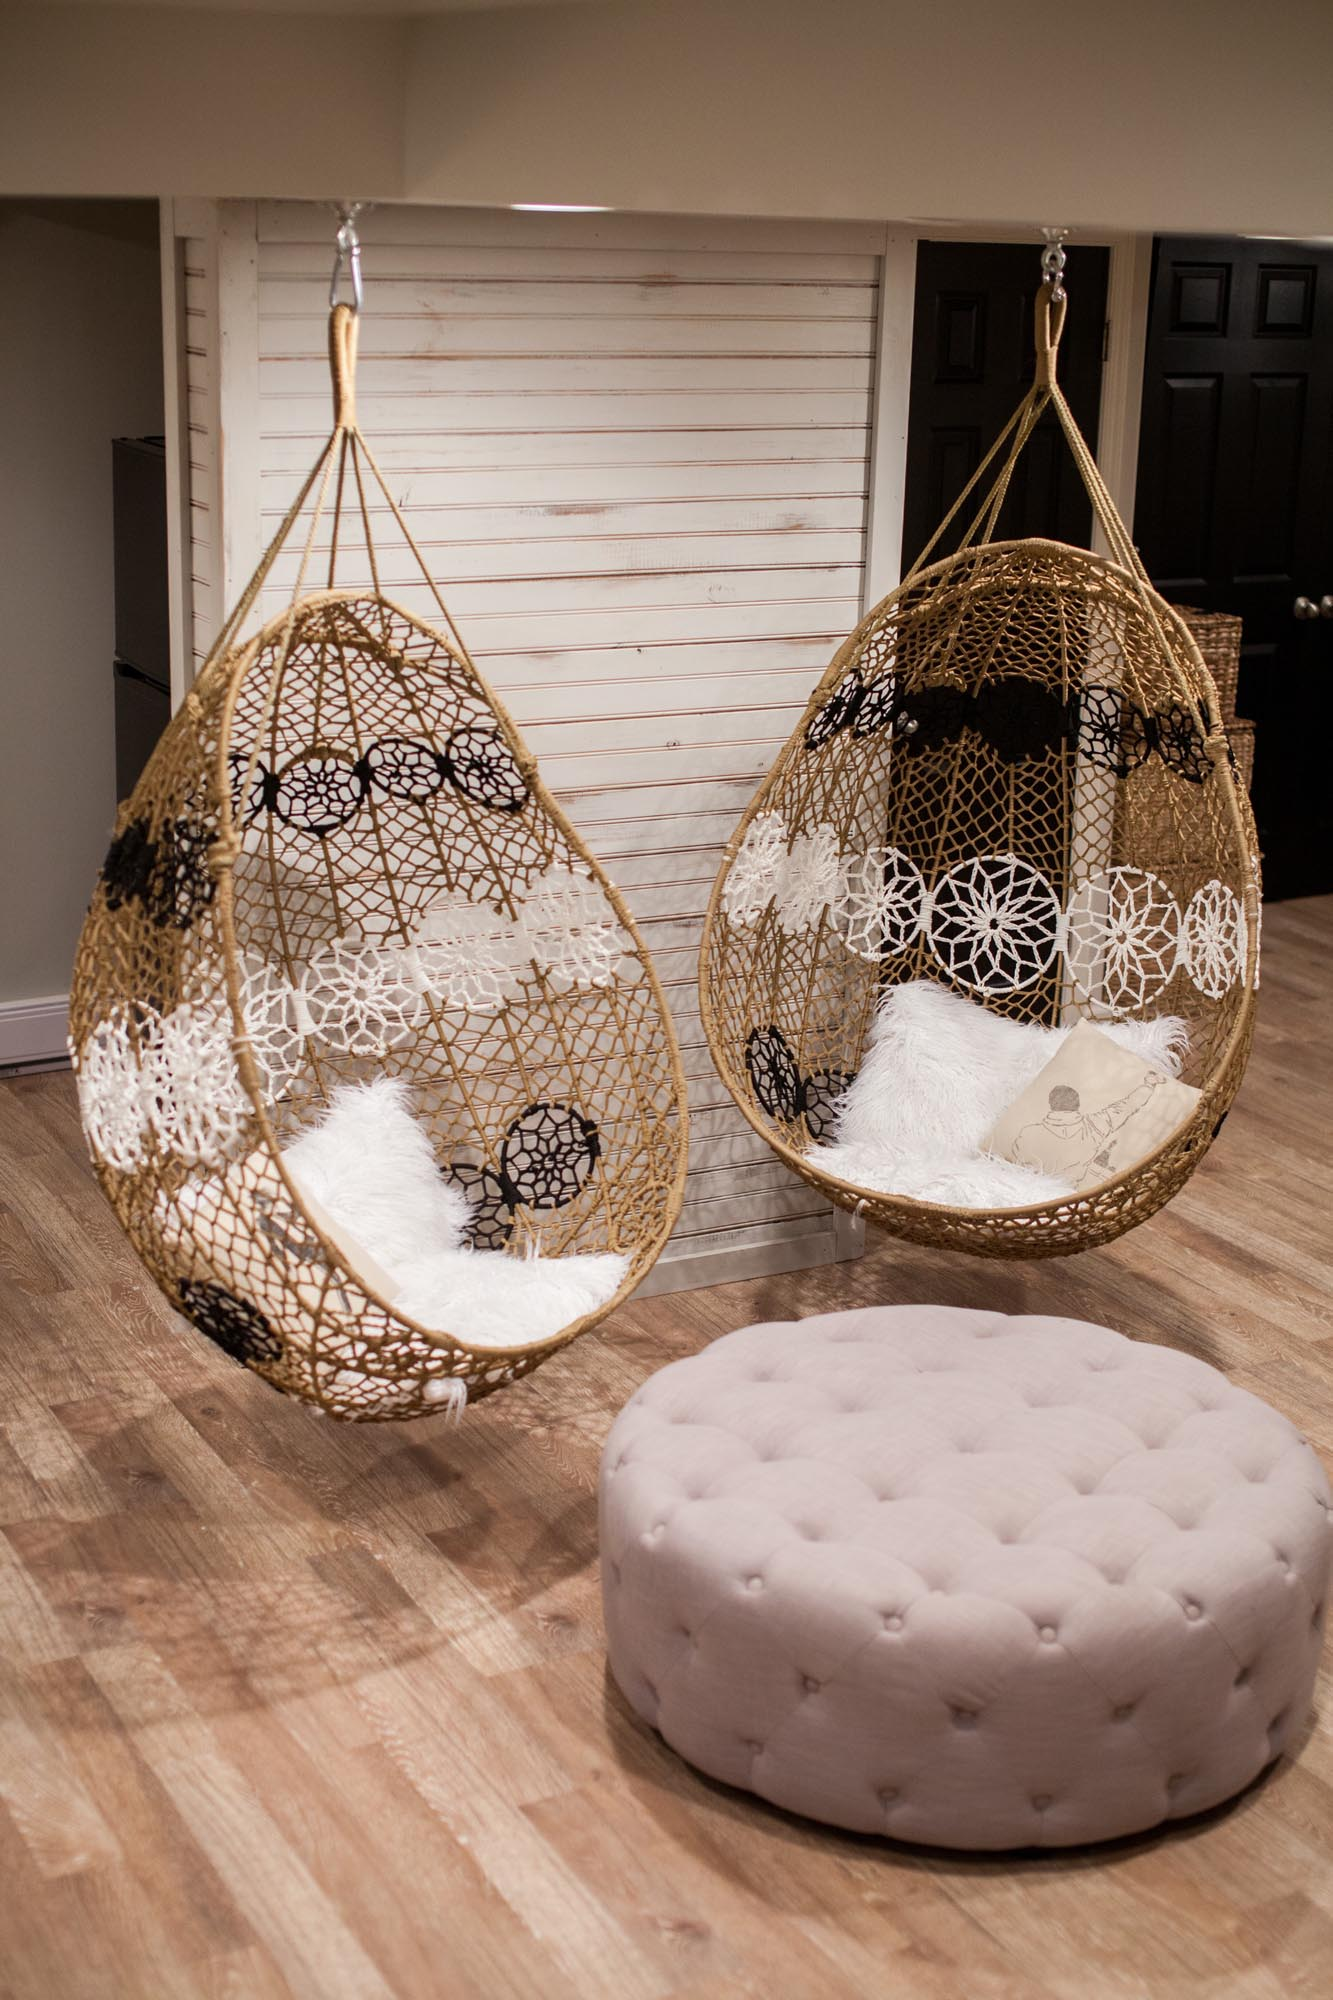 Hanging wicker chairs and round cushioned ottoman